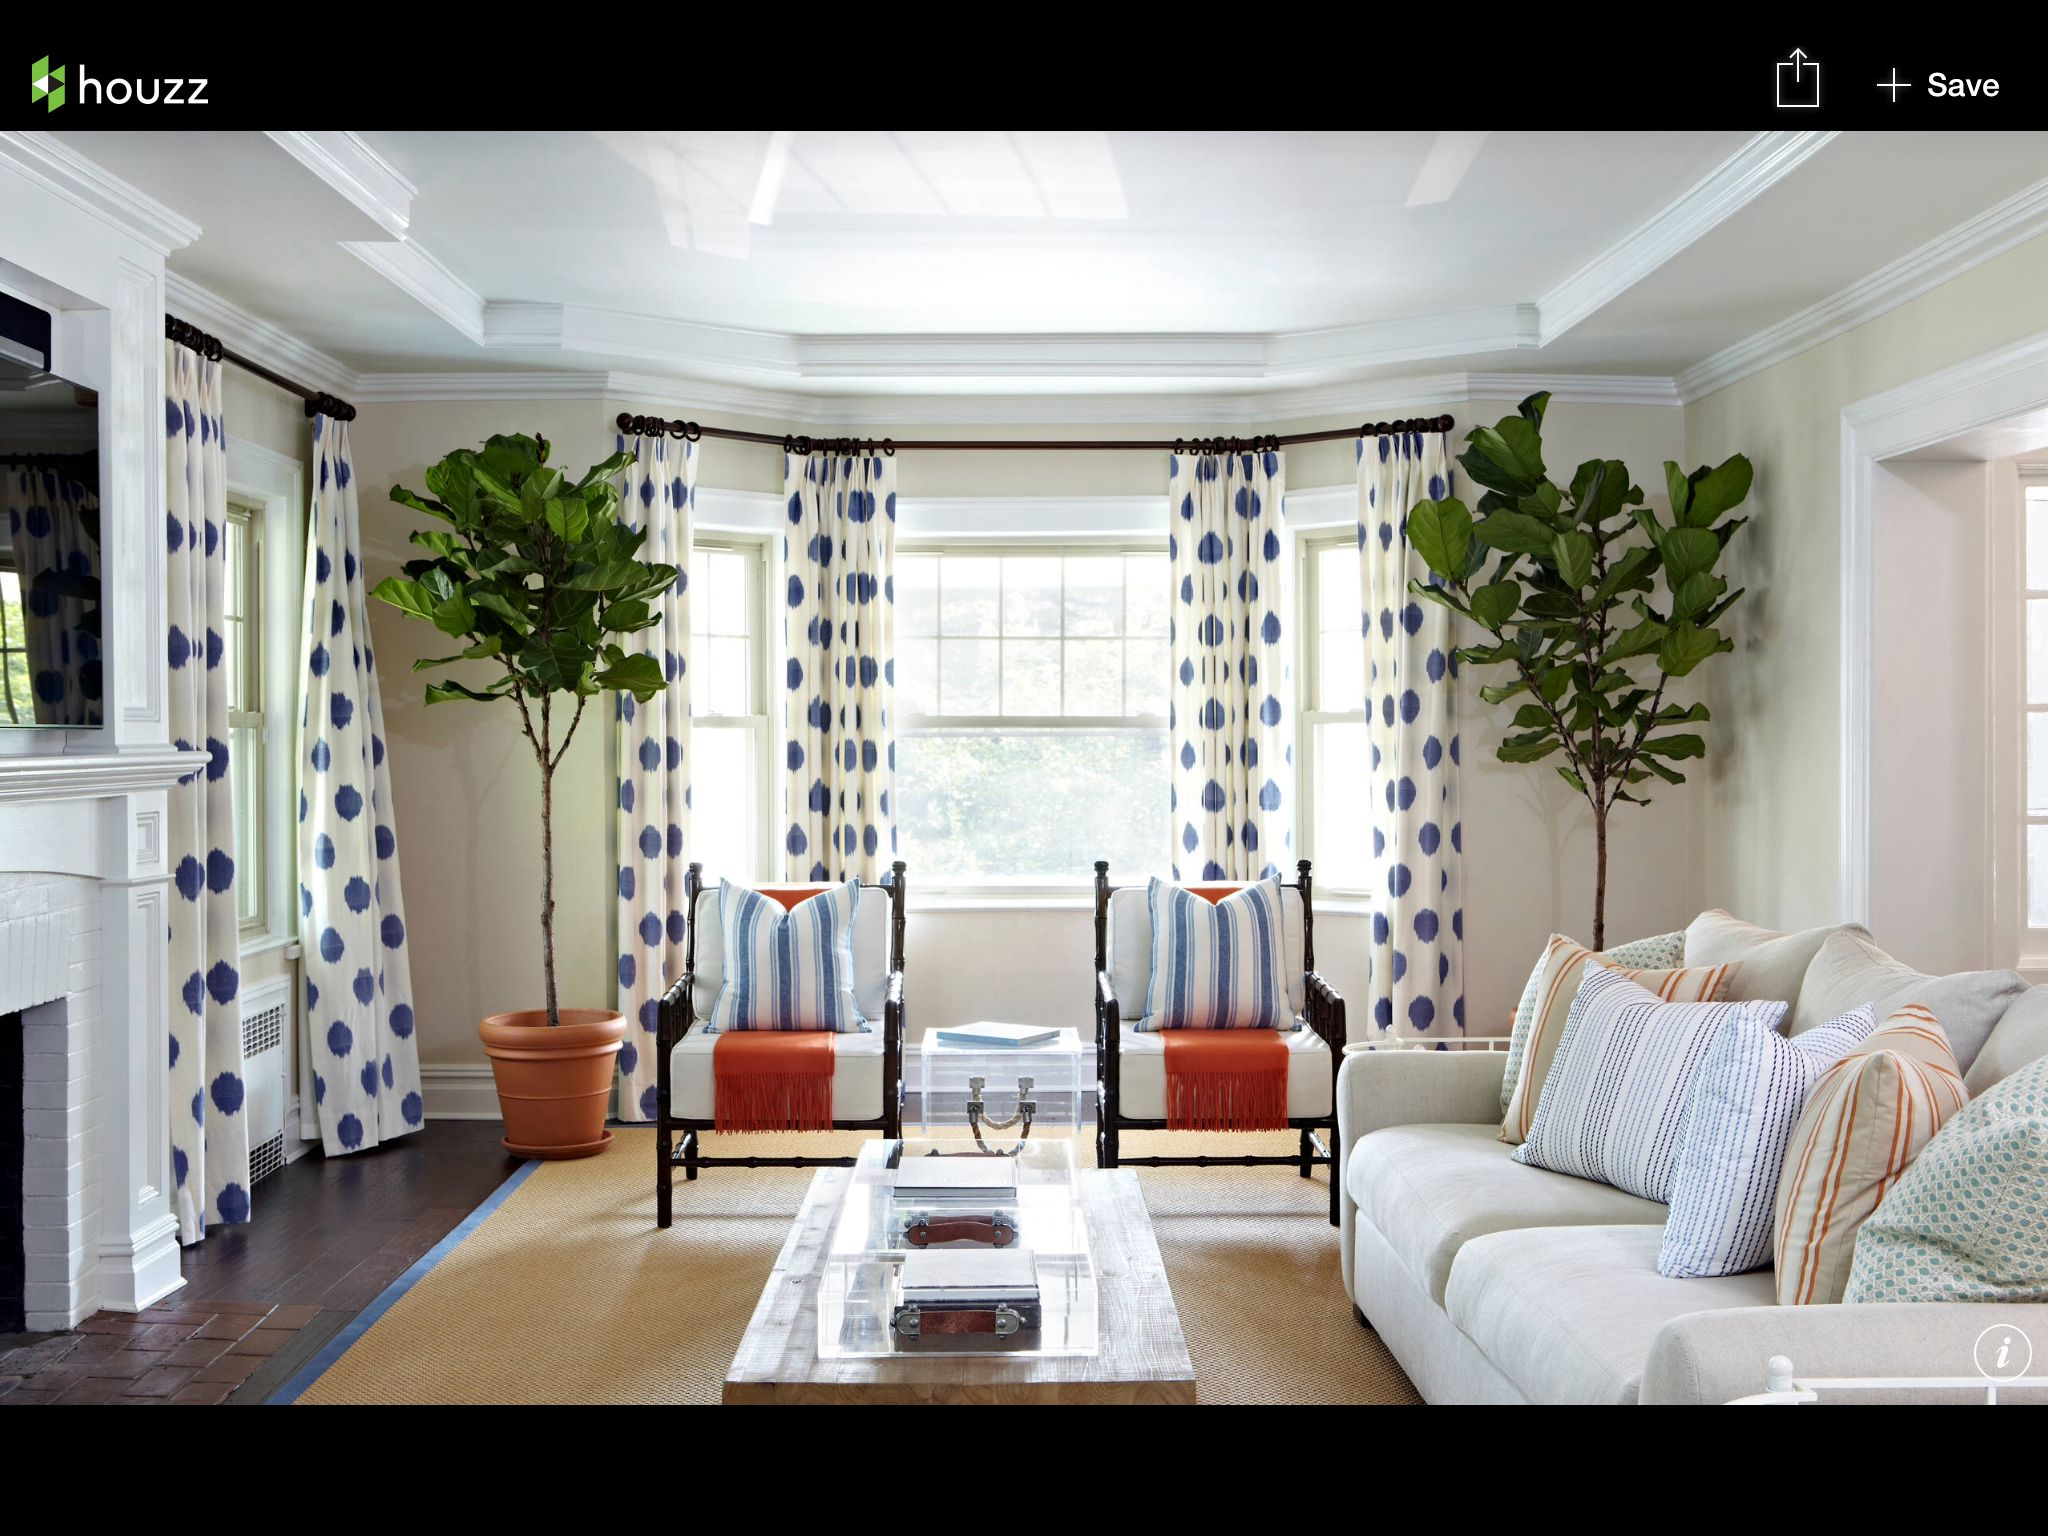 Living Room Design Houzz Impressive Living Room Inspiration From Houzz  House Inspiration  Pinterest Decorating Design